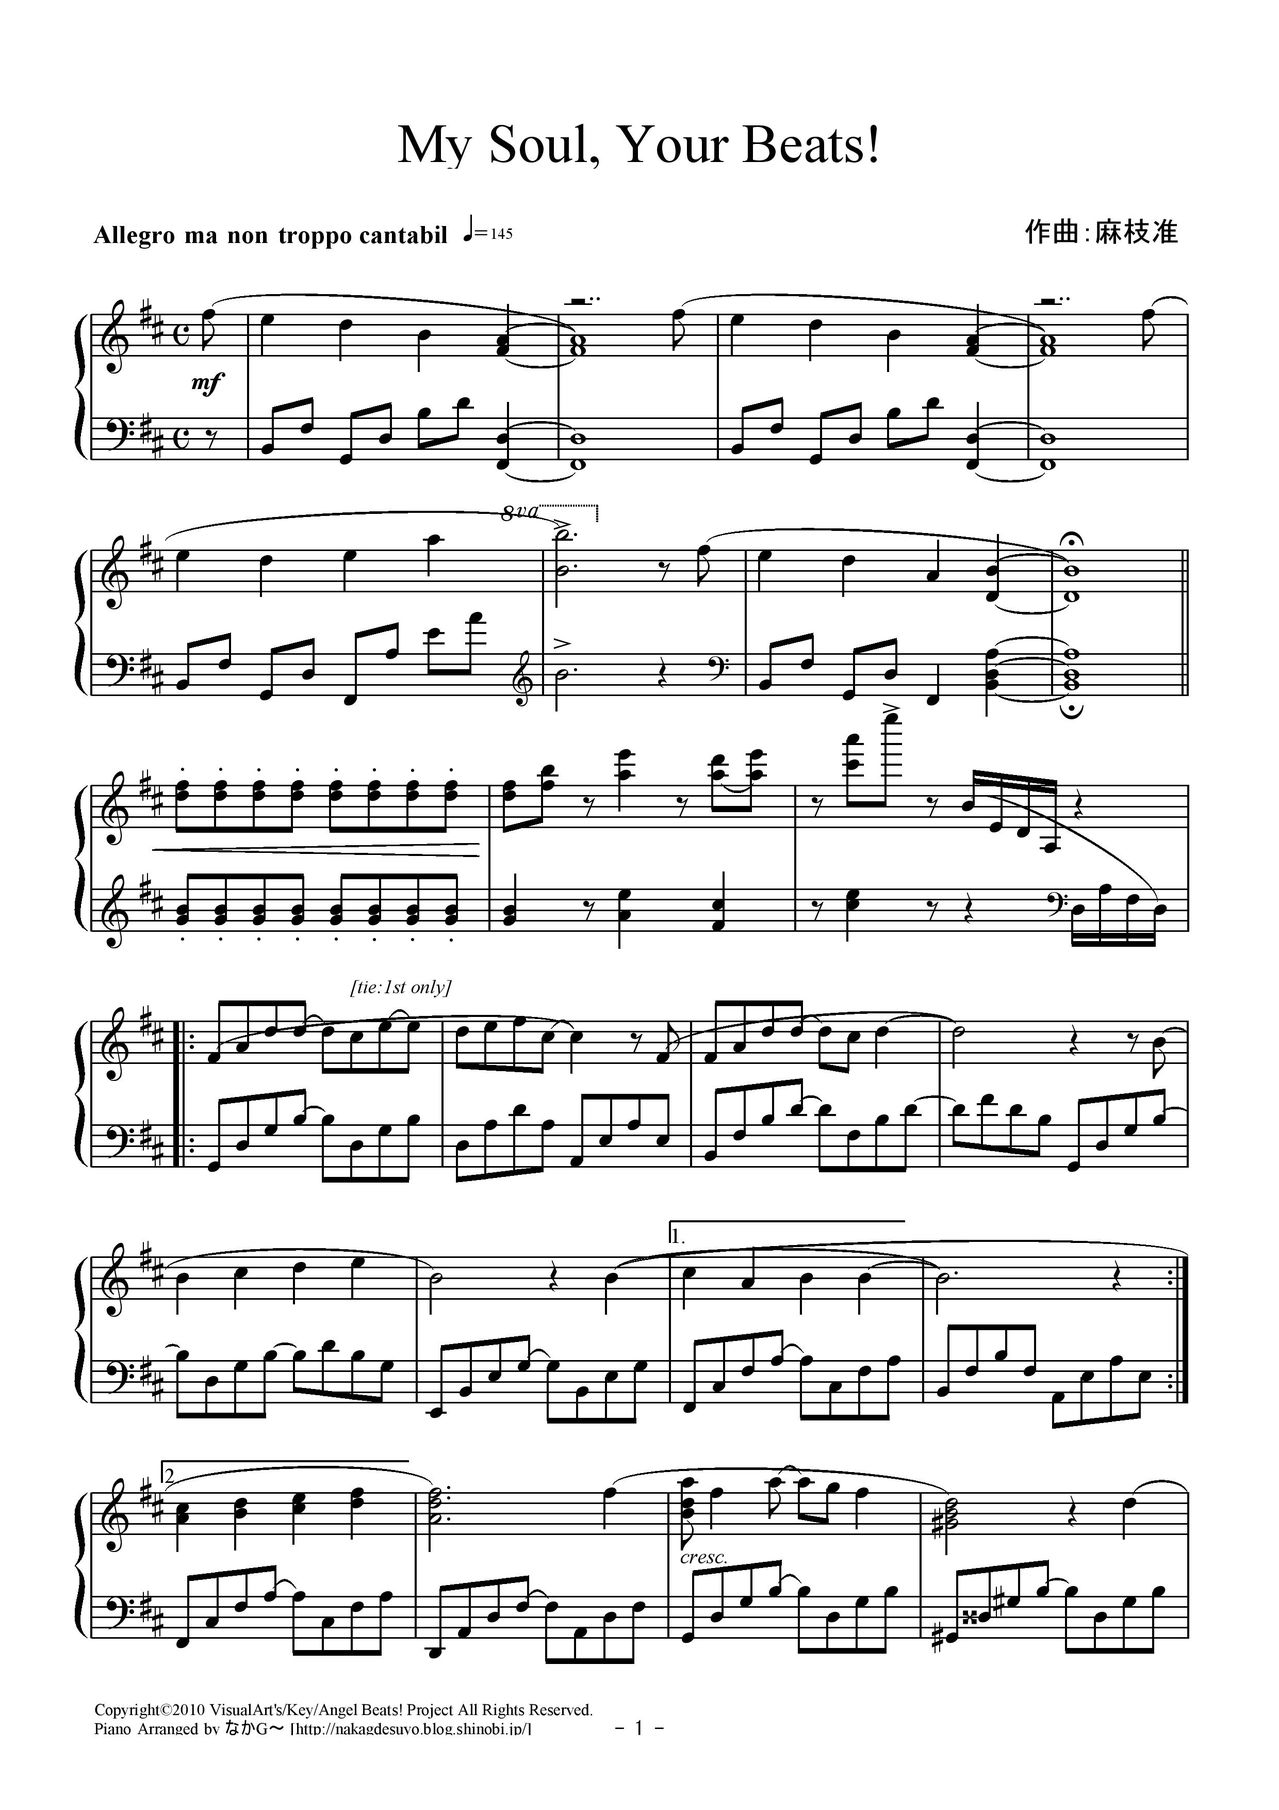 General Questions About Piano Sheet Music Notation